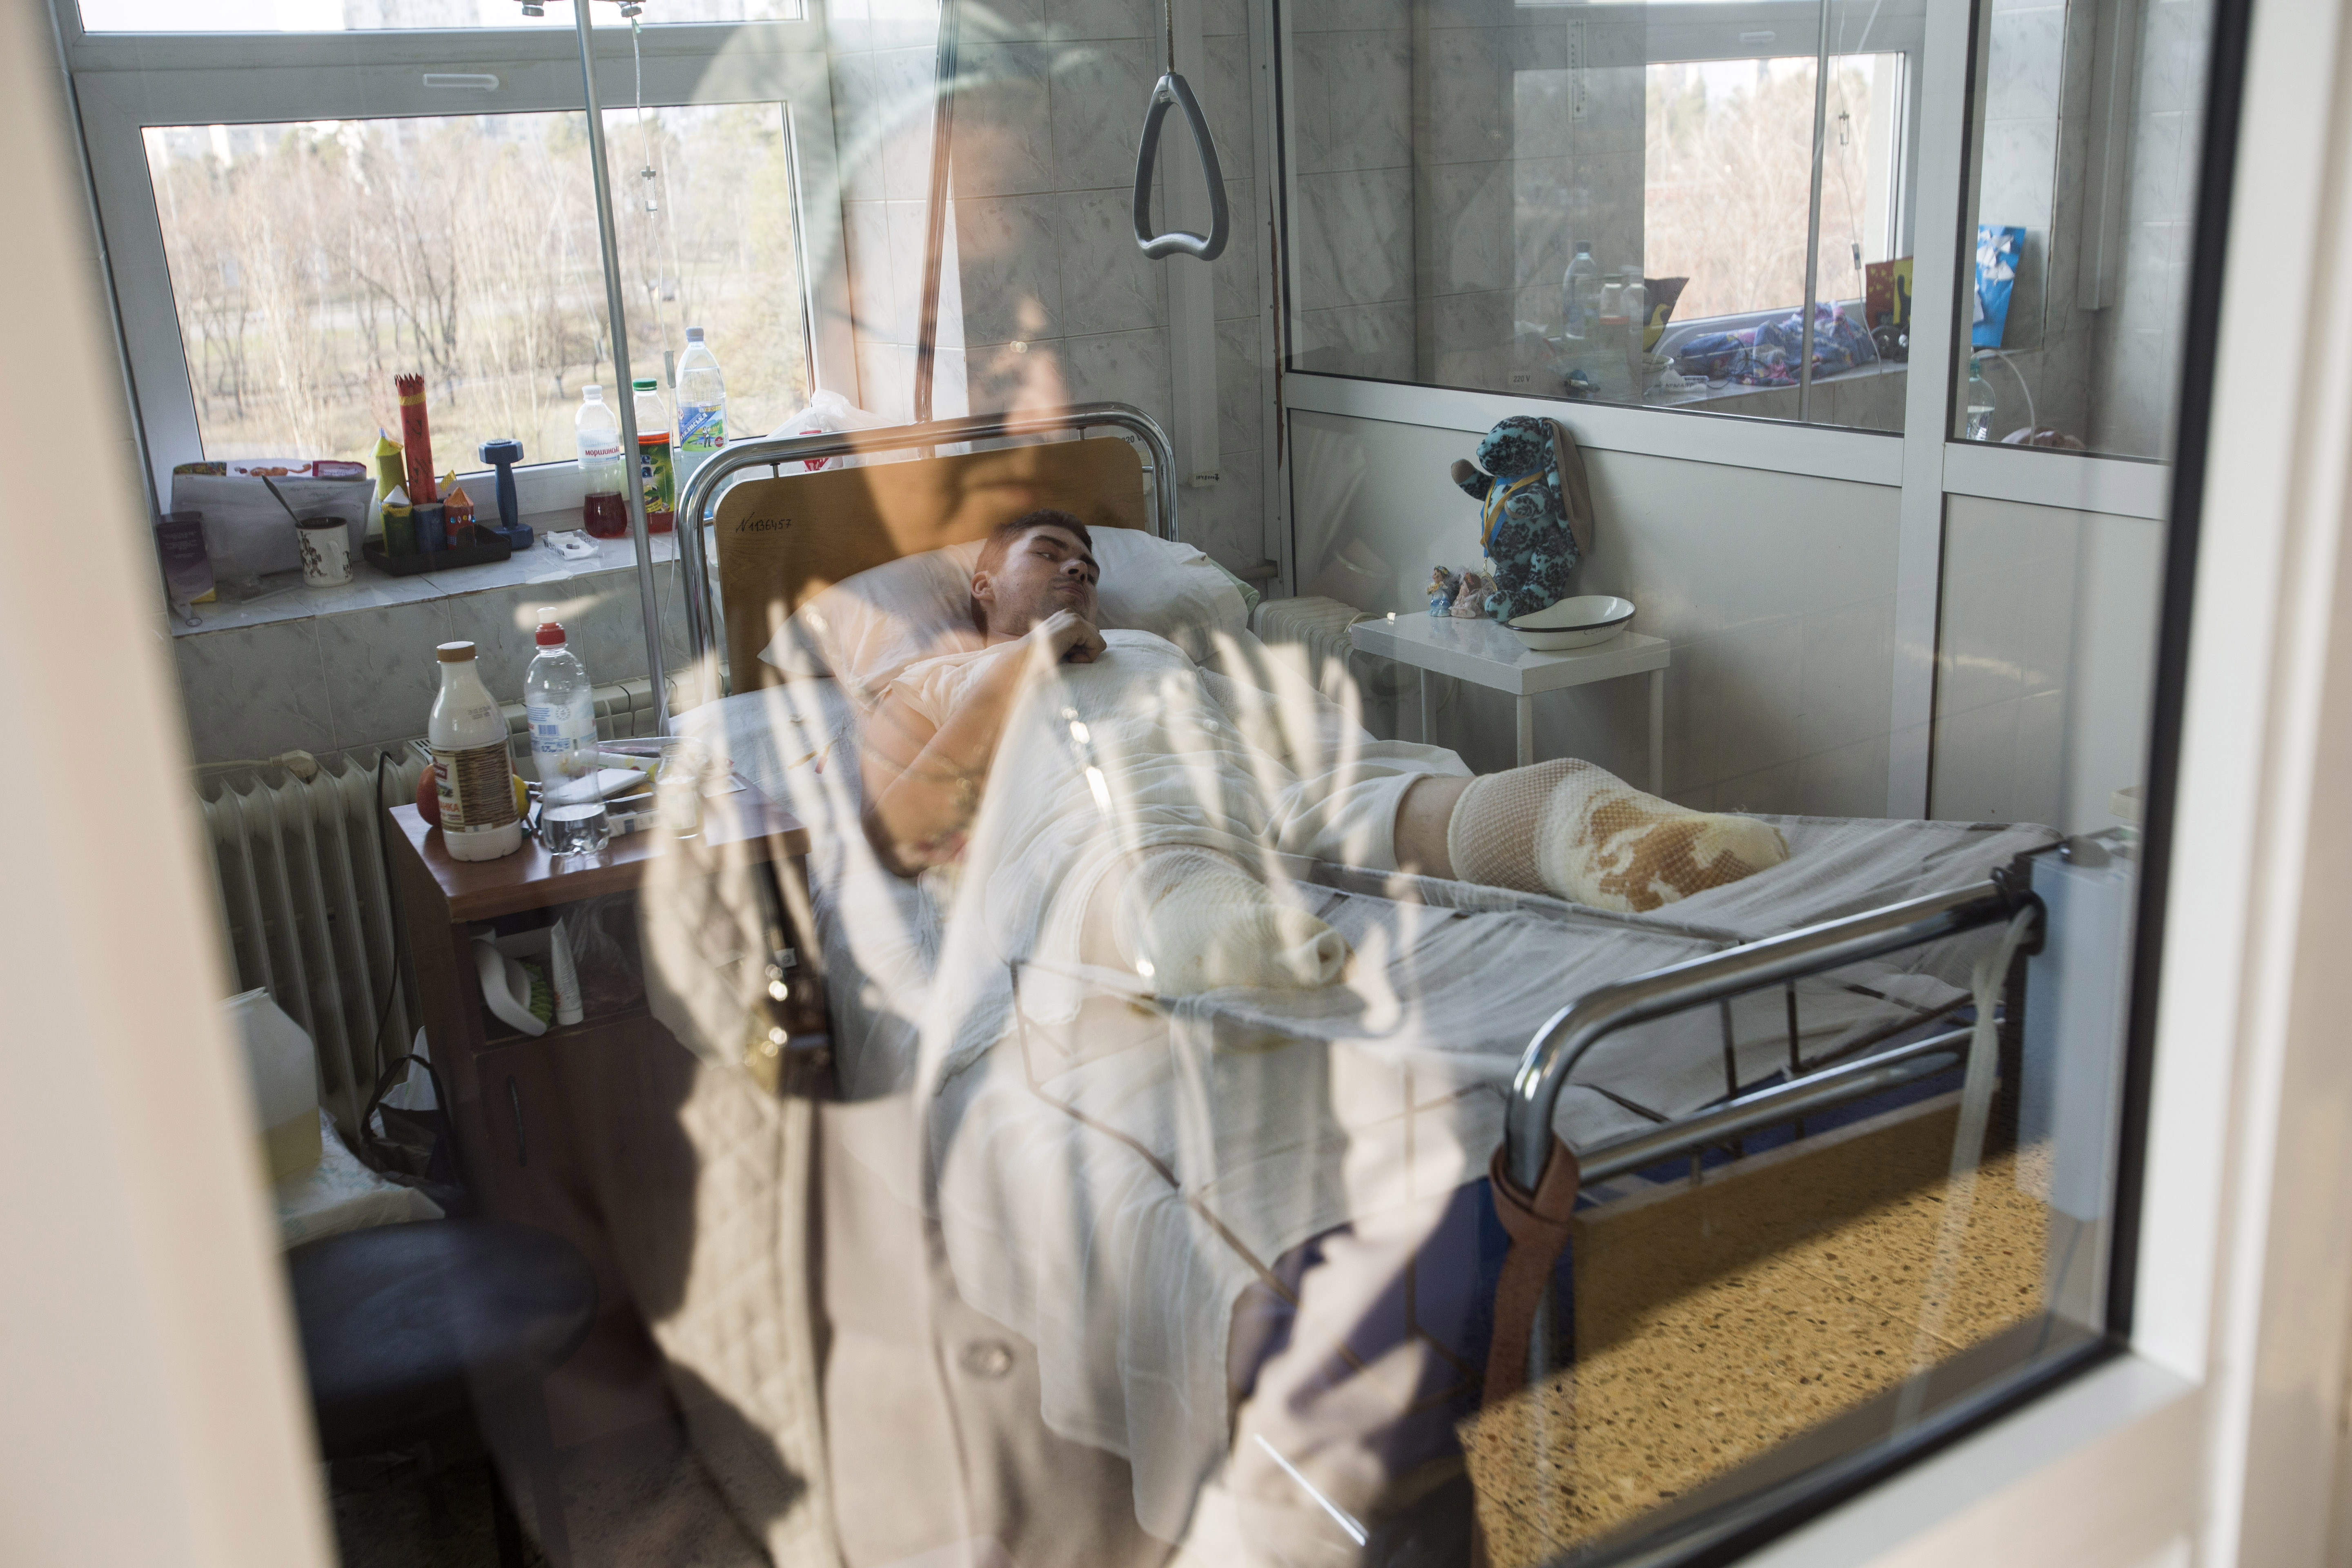 """Vadym Dovhoruk, 23, a Ukrainian Special Forces soldier, lays in the intensive care ward at the city burn center in Kiev, Ukraine, March 25, 2015. He was near Debaltseve when his unit was shelled on the second day of the armistice commonly referred to as Minsk II. Dovhoruk was wounded in the attack and also suffered severe frostbite after spending three days in a forest, before being detained by Russian-supported separatist forces. He is now a triple amputee. """"We were ambushed,"""" he said at the time. """"I was informed yesterday about all the guys. Two others and I went missing. One of them was buried yesterday. Another is in morgue in a Dnipropetrovsk, but his parents have not yet recovered his remains. They recognized him but are still waiting for the DNA test results. He was our commander."""""""